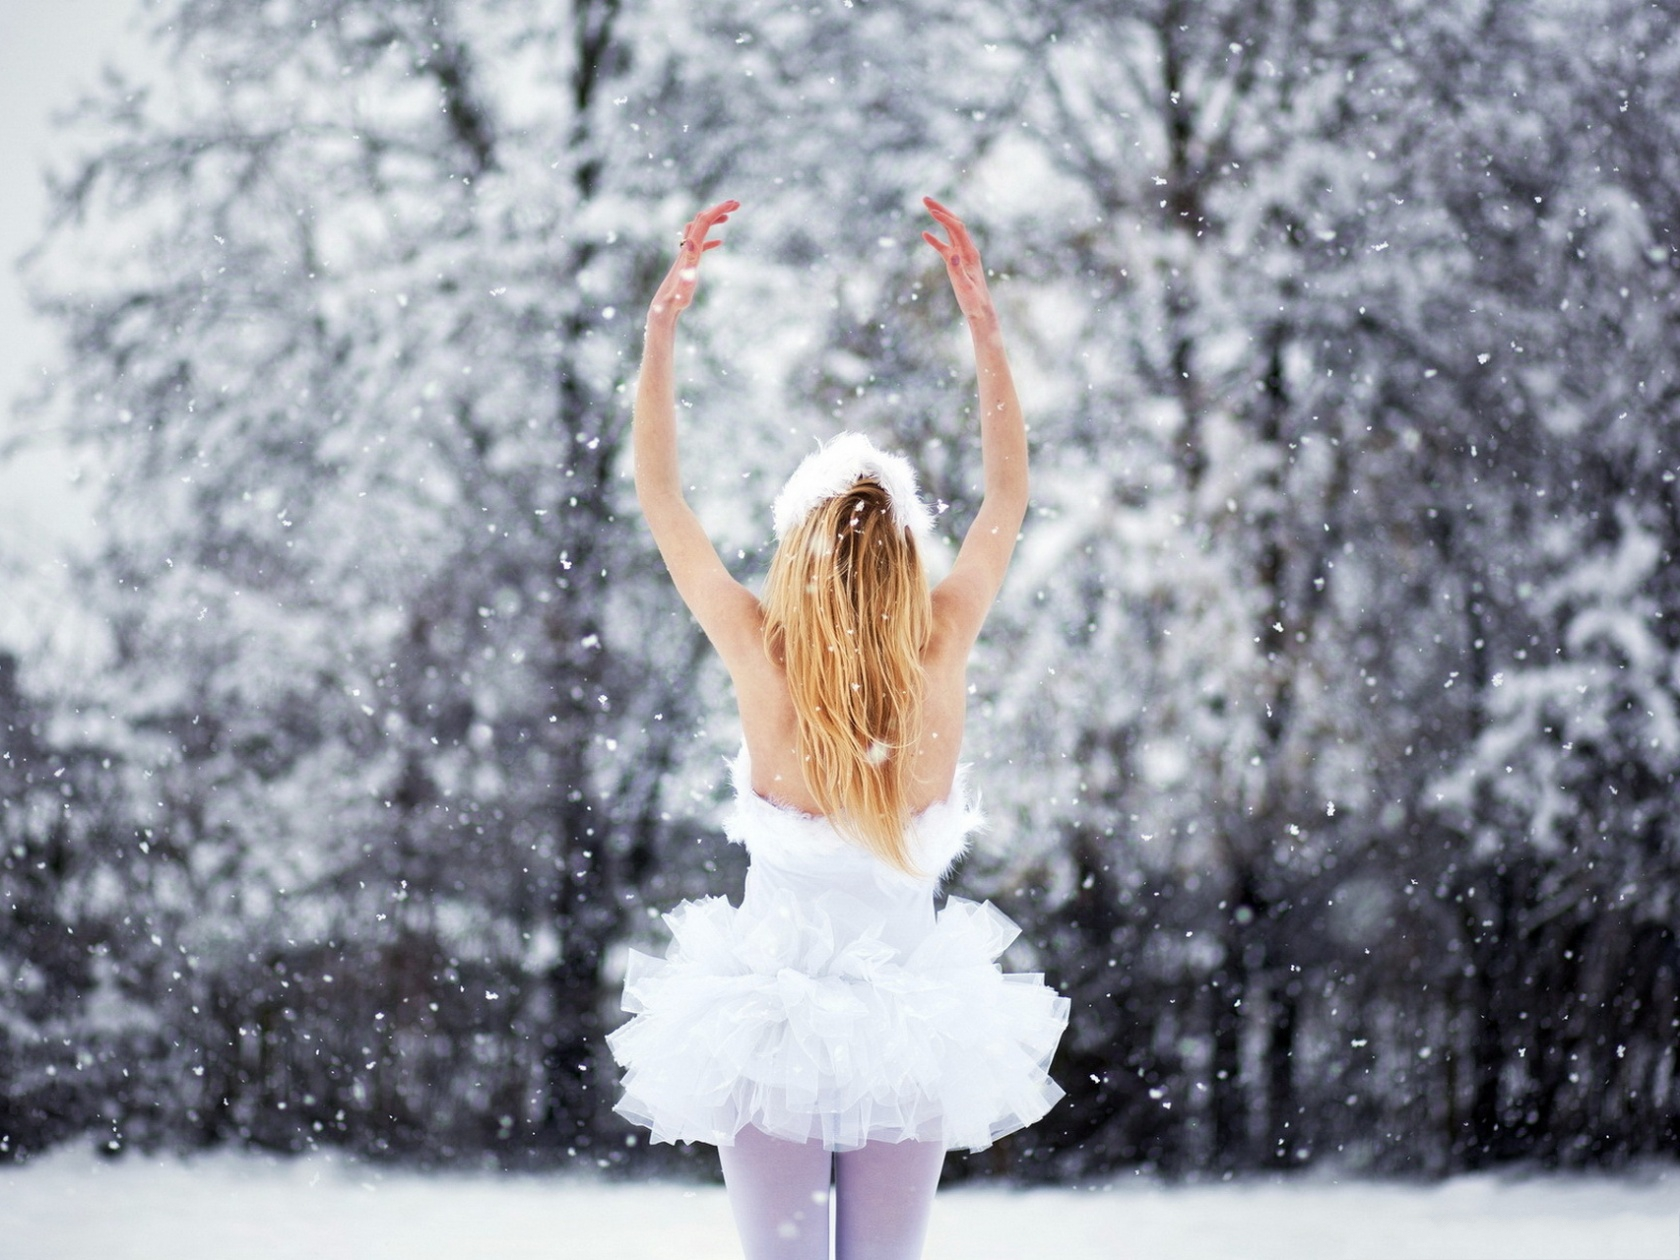 click to free download the wallpaper--Hot Girls Photo, in Short White Dress, Dancing in the Snow, the Pure Angel 1600X1200 free wallpaper download